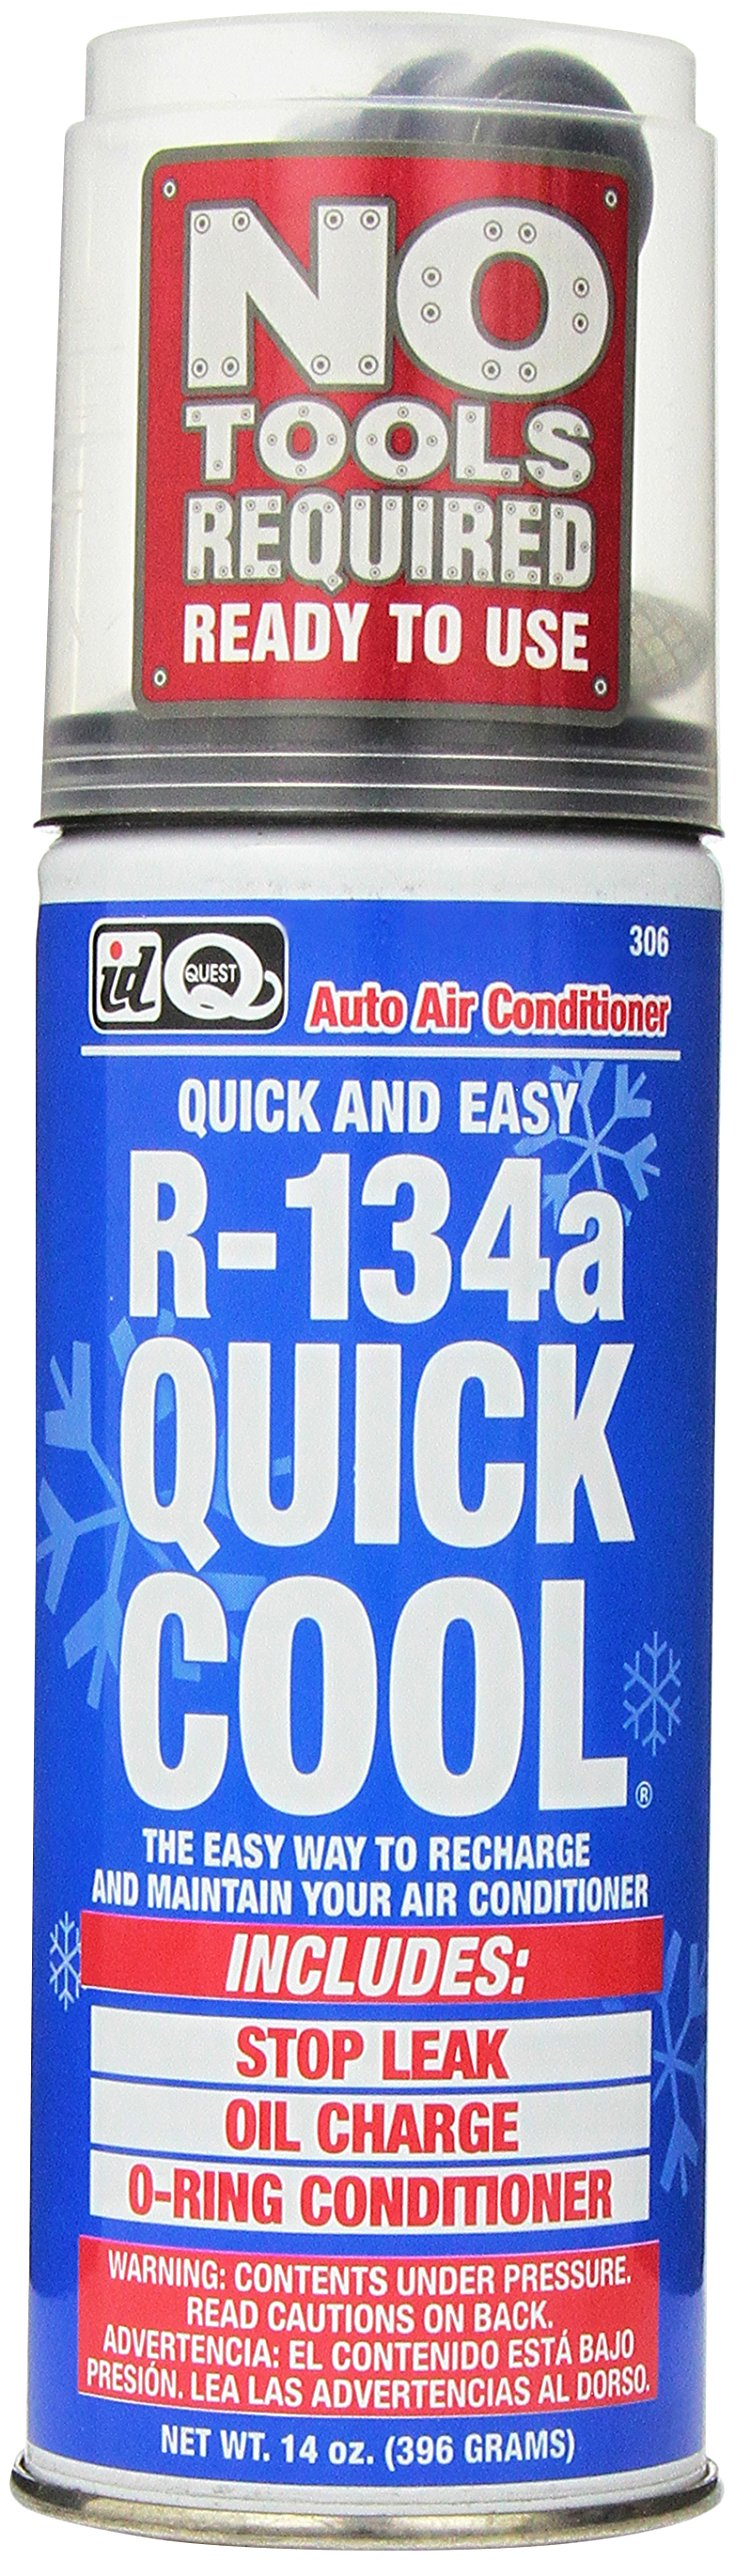 Interdynamics Certified A/C Pro R-134a With Quick Cool (14 ounces) by Interdynamics